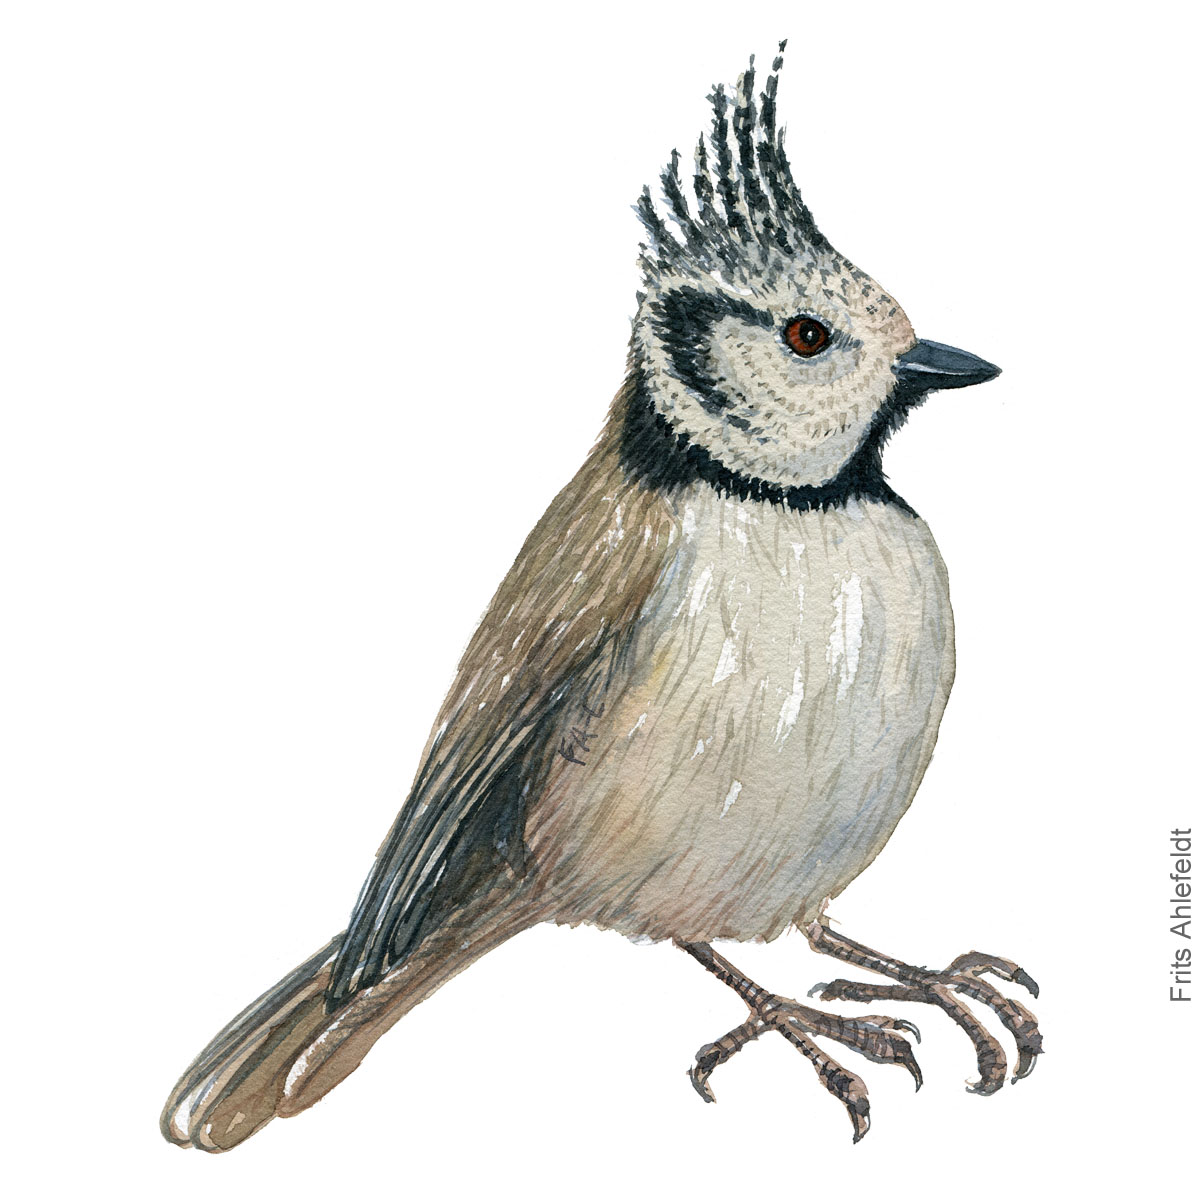 topmejse - European crested tit - Bird painting in watercolor by Frits Ahlefeldt - Fugle akvarel